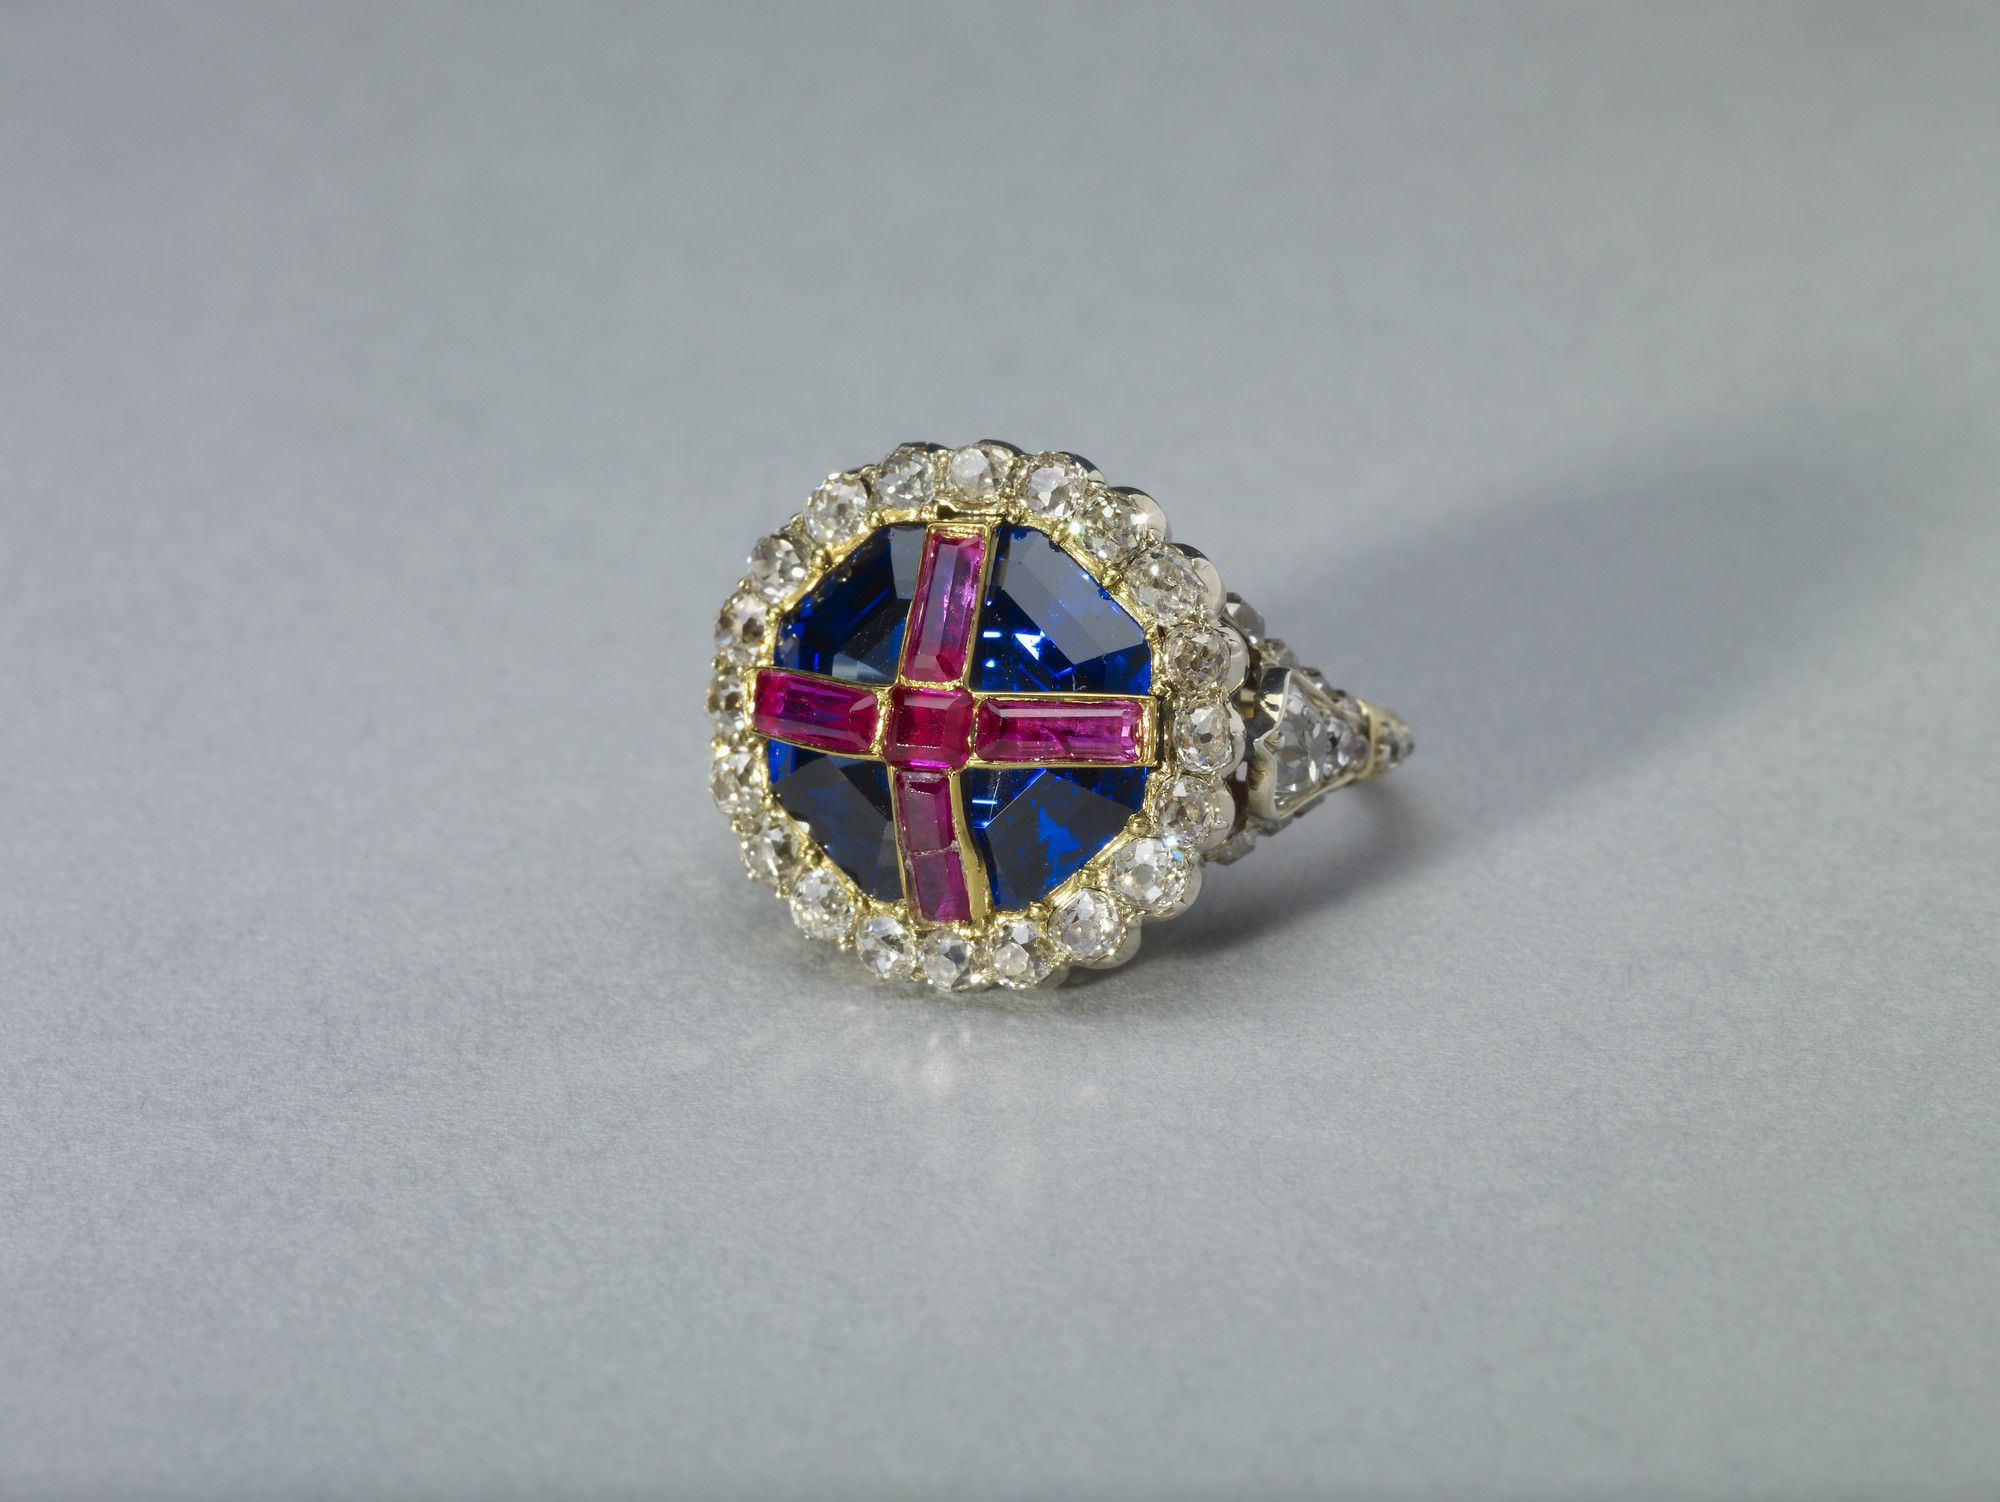 Queen Victoria's Coronation Ring | The Royal Collection